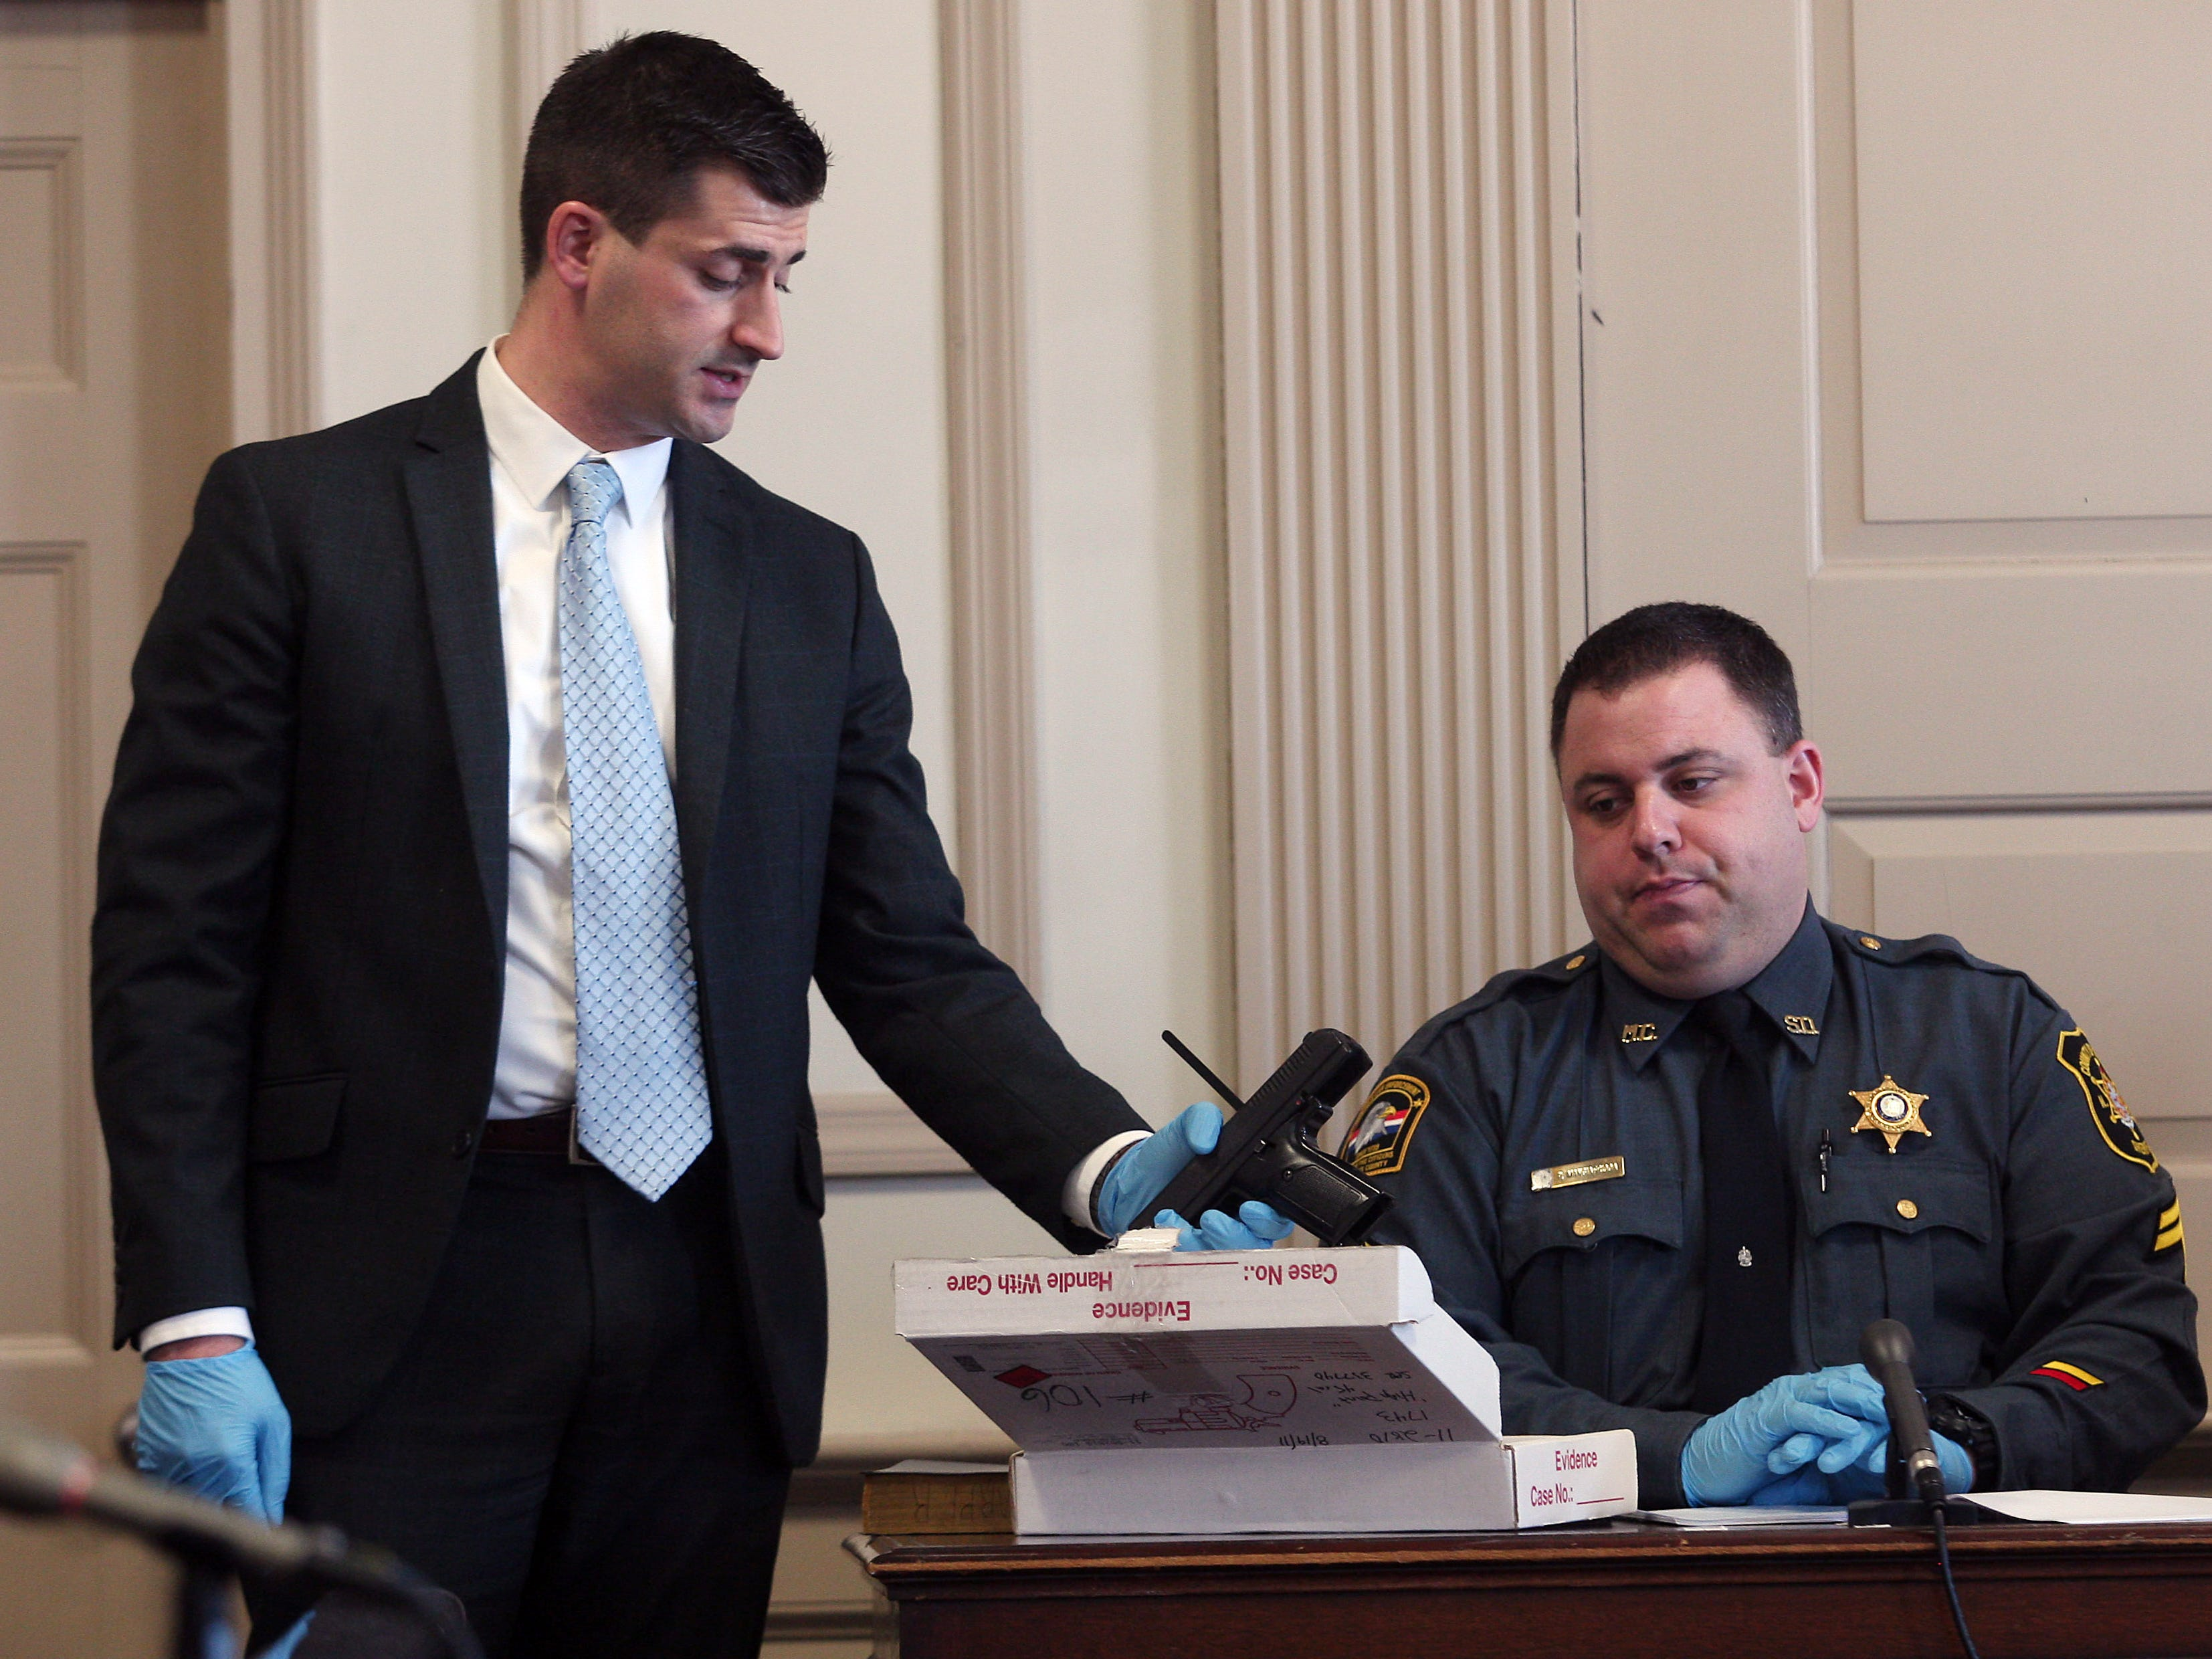 Assistant Prosecutor Matthew Troiano shows one of three guns found at the residence of Antionette Stephen for identification by Morris County Sheriff Detective Phil Mangiafridda during direct testimony. Stephen pleaded guilty to murder last year and is expected to testify against Kashif Parvaiz in his murder trial, accused of killing his wife Nazish Noorani in August 2011.  February 11, 2015. Morristown, N.J. Bob Karp/Staff Photographer.